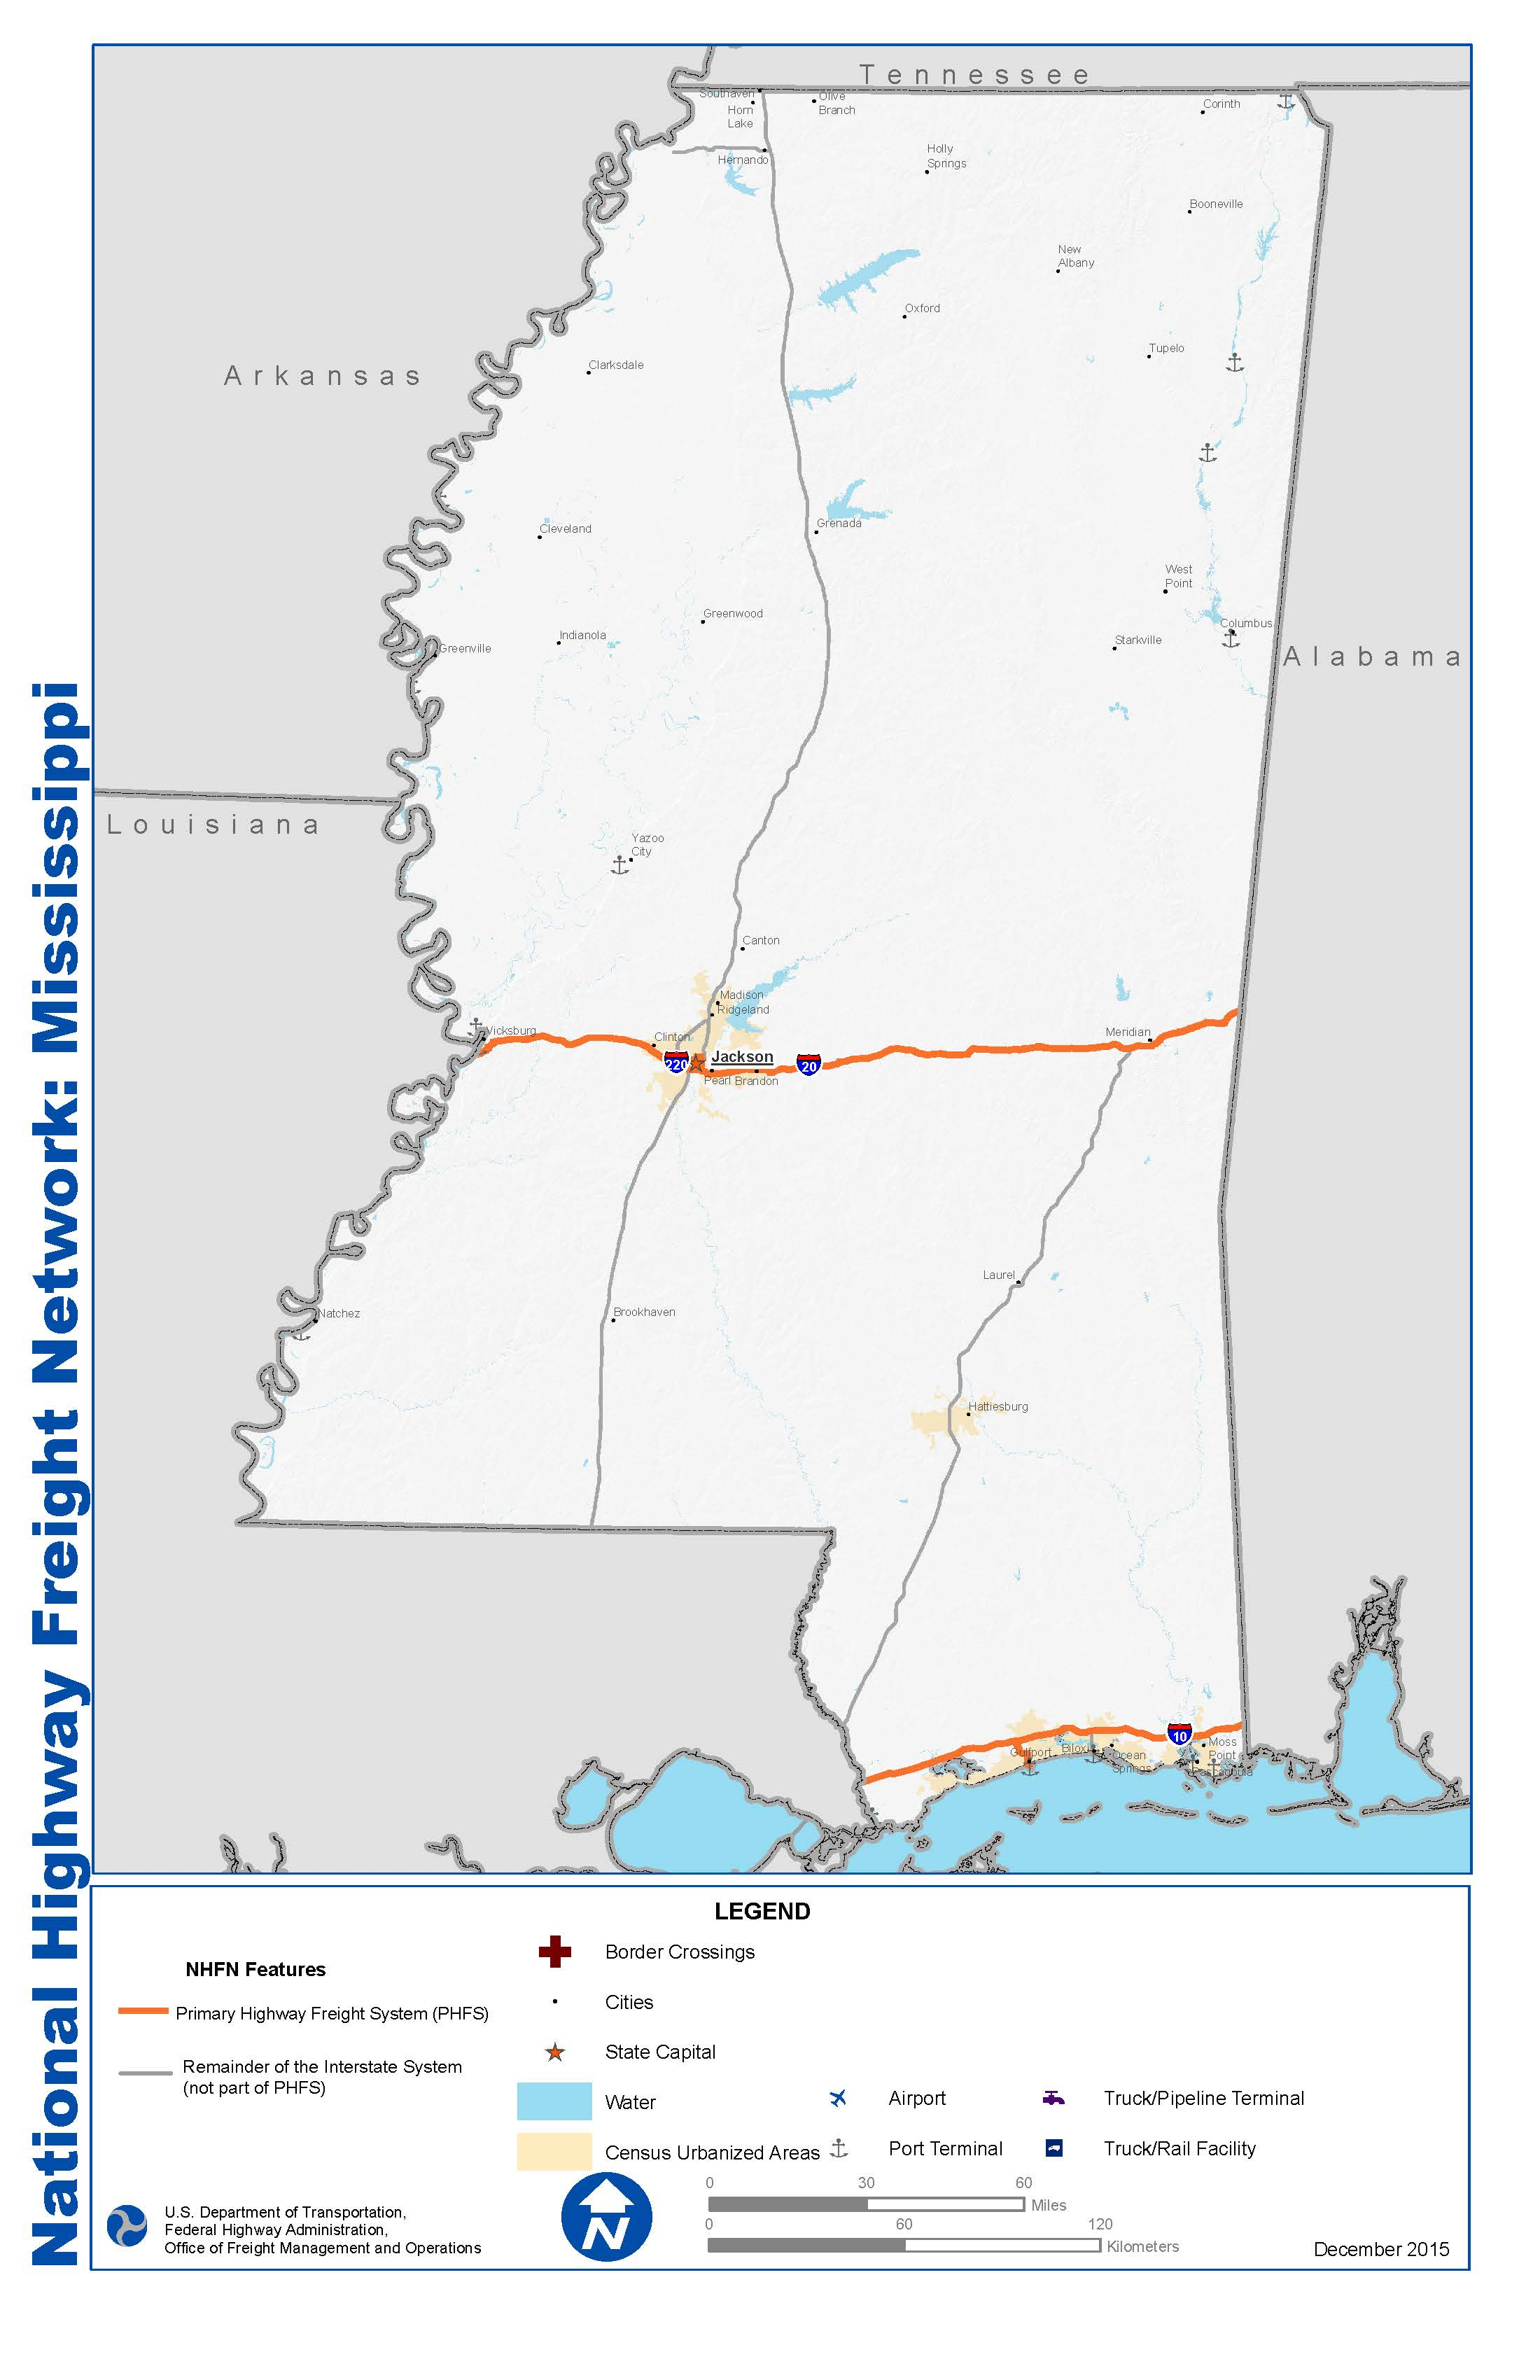 National Highway Freight Network Map And Tables For Mississippi - Hwy us 90 mississippi map